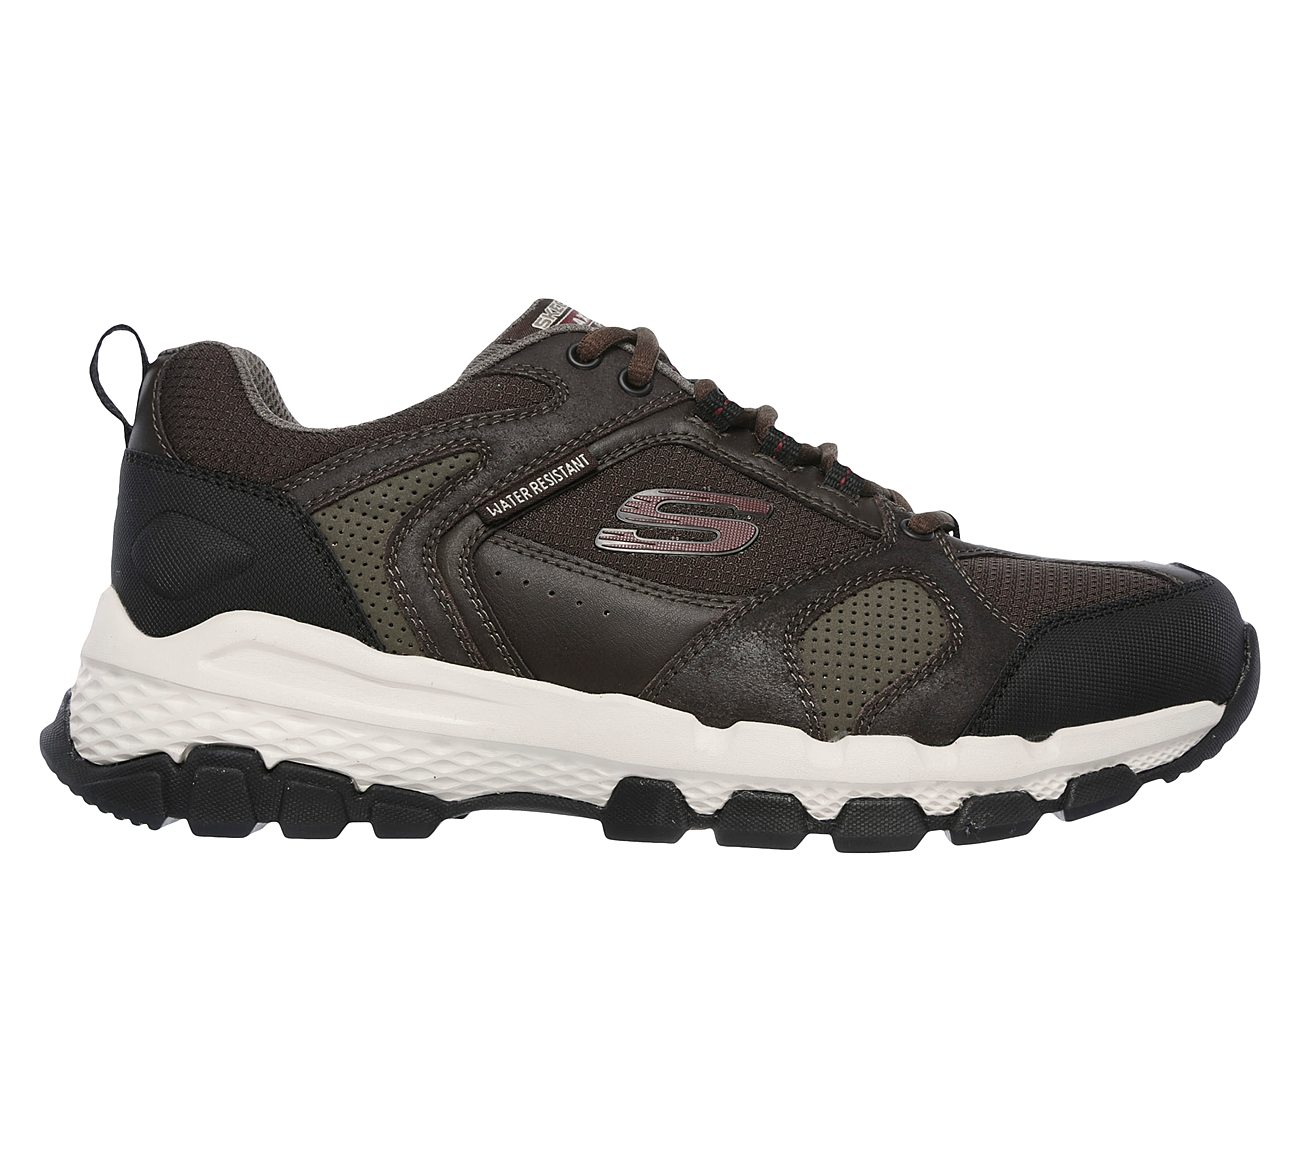 Men's Skechers 51586 Outland Relaxed 2.0 Running Shoes cheap discounts 9sfaF